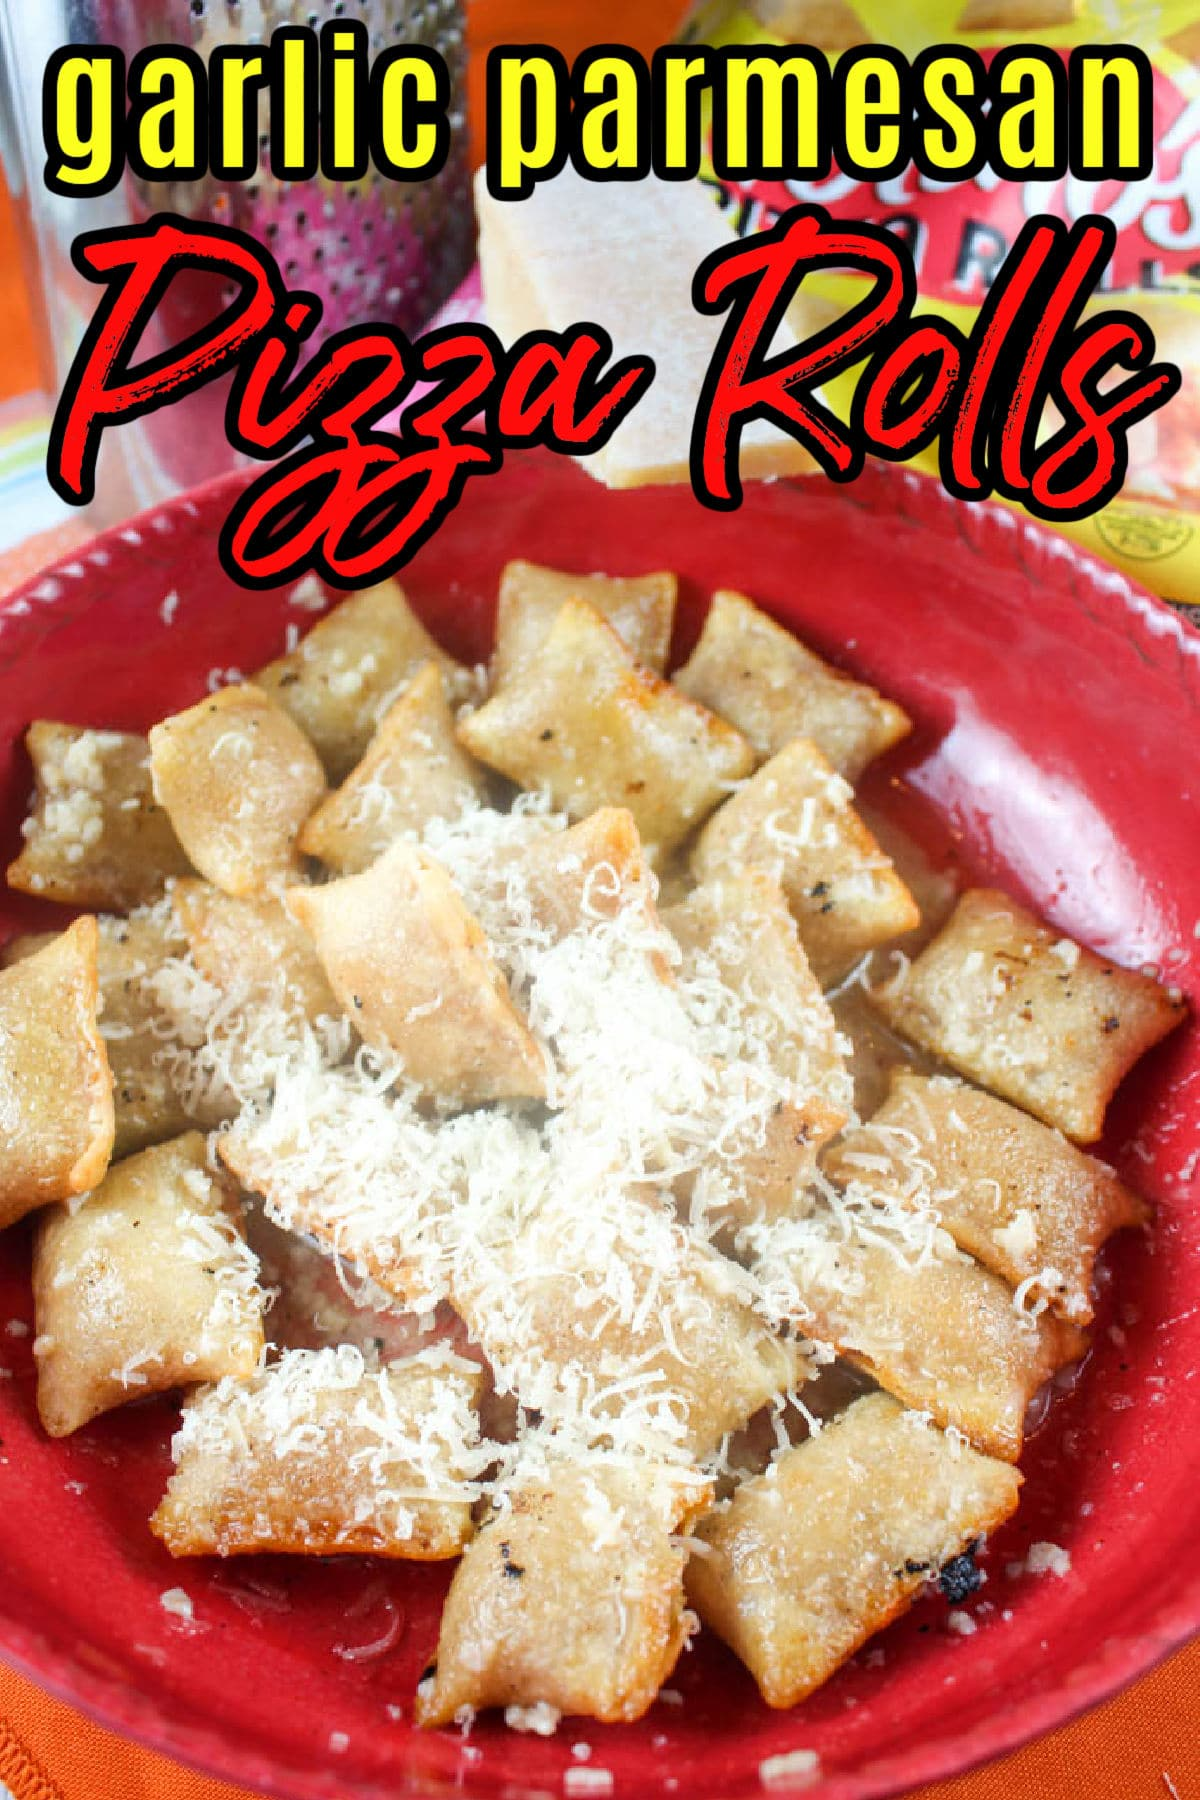 Pizza rolls in the air fryer are a game changer when it comes to snack foods! I took these pizza rolls and knocked them out of the park by tossing them in garlic parmesan butter! (I saw it on the Instagram!)  via @foodhussy